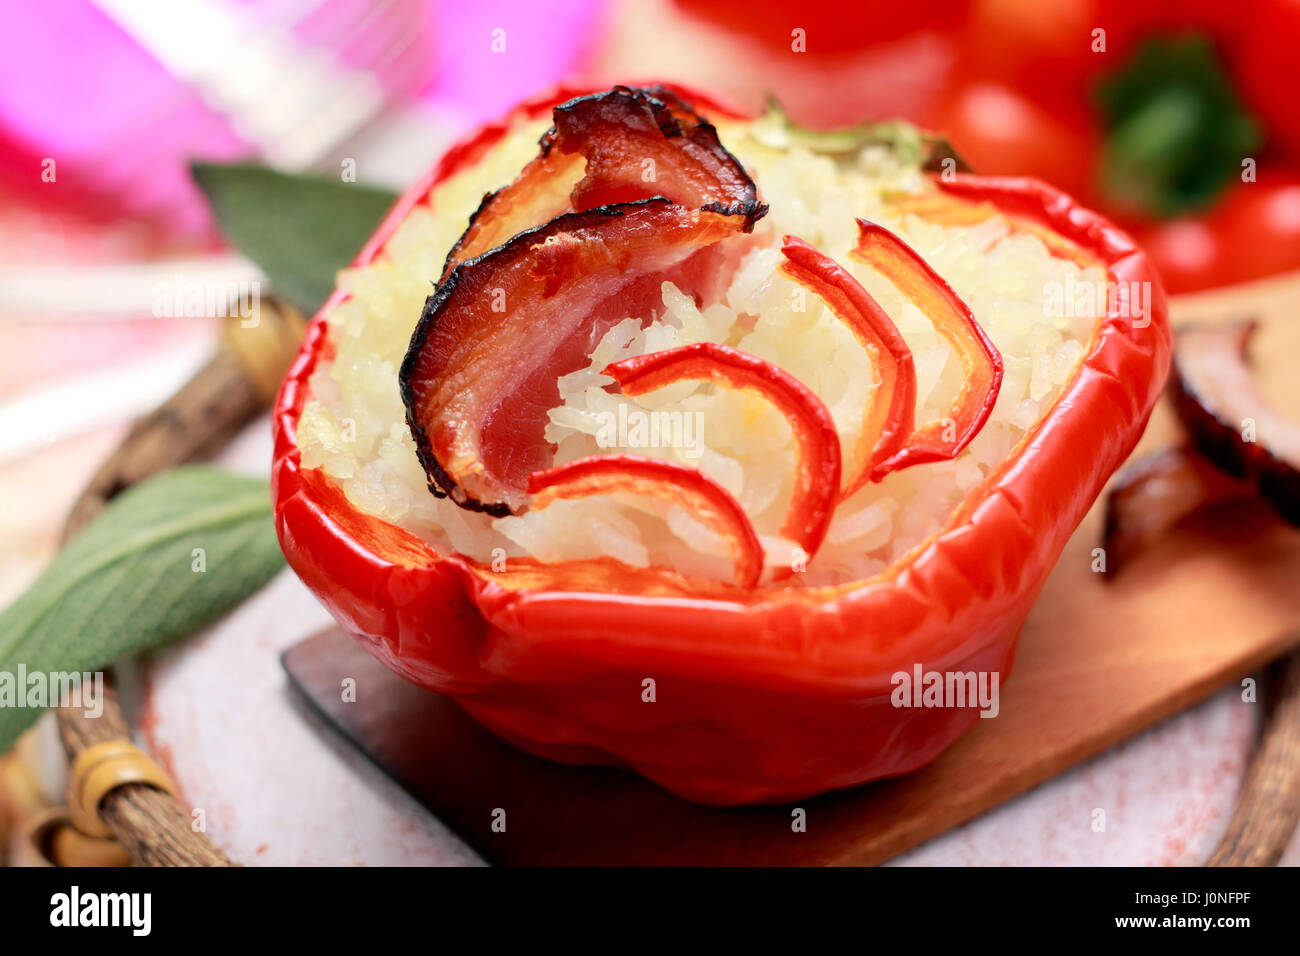 Roasted red pepper stuffed with rice and bacon. Very low depth of field. - Stock Image